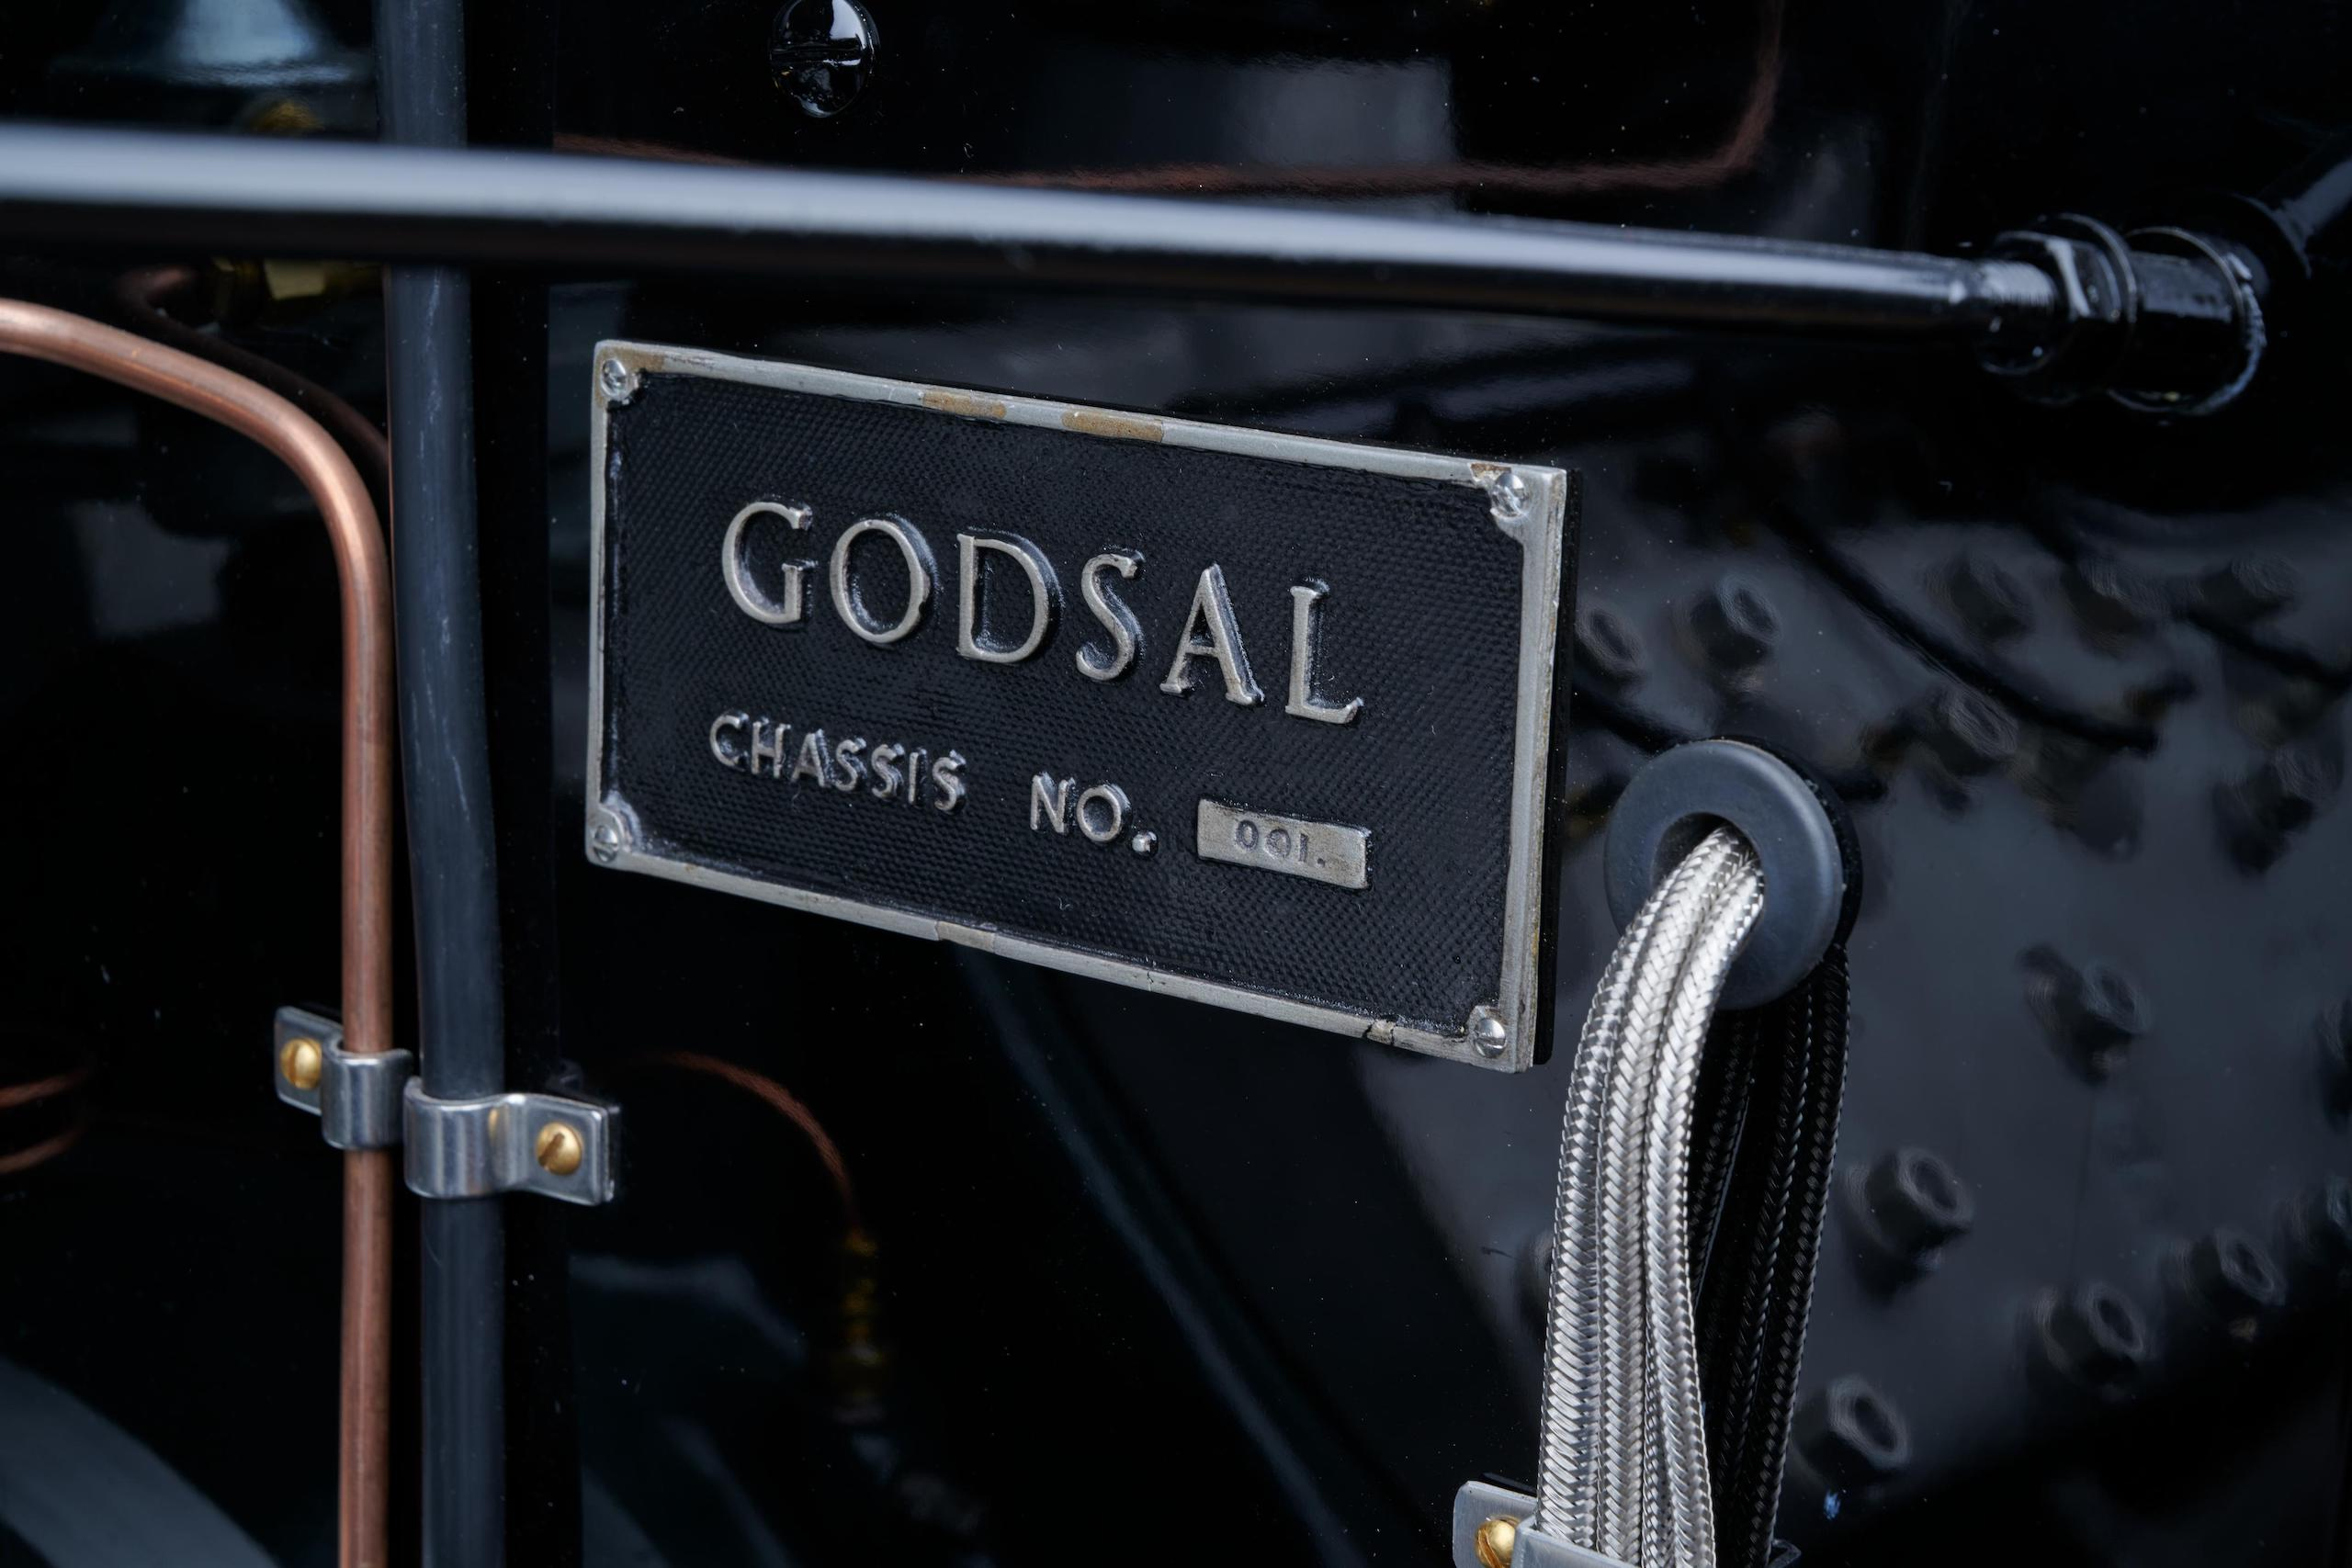 1935 Godsal Sports Tourer plate